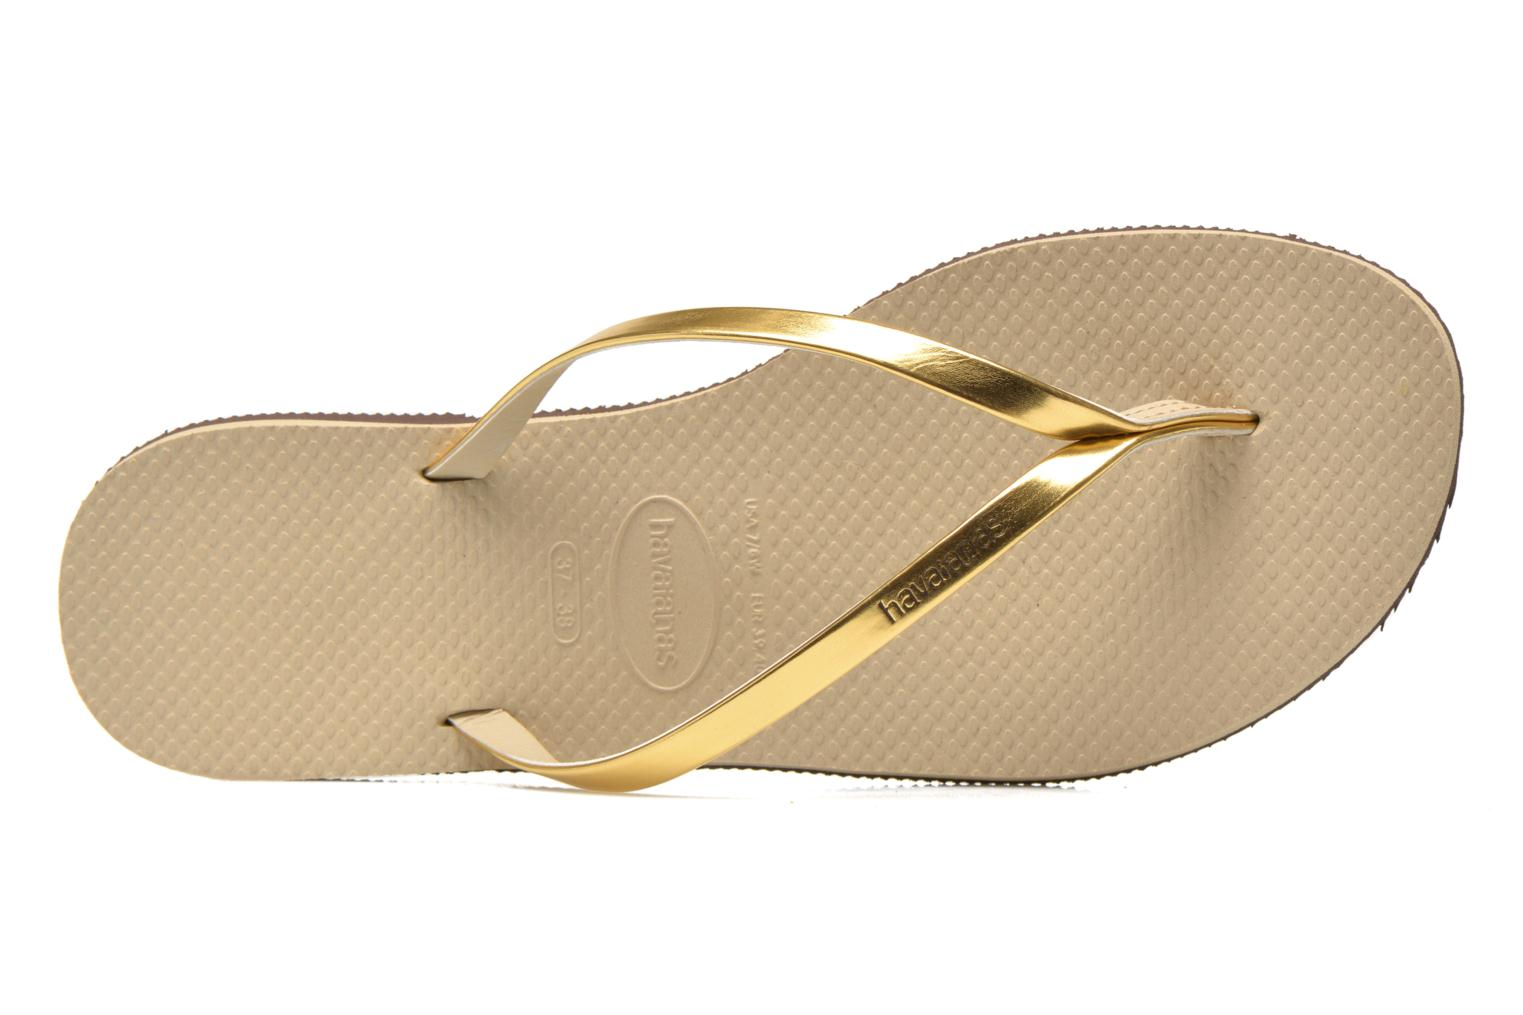 Zehensandalen Havaianas You Metallic gold/bronze ansicht von links